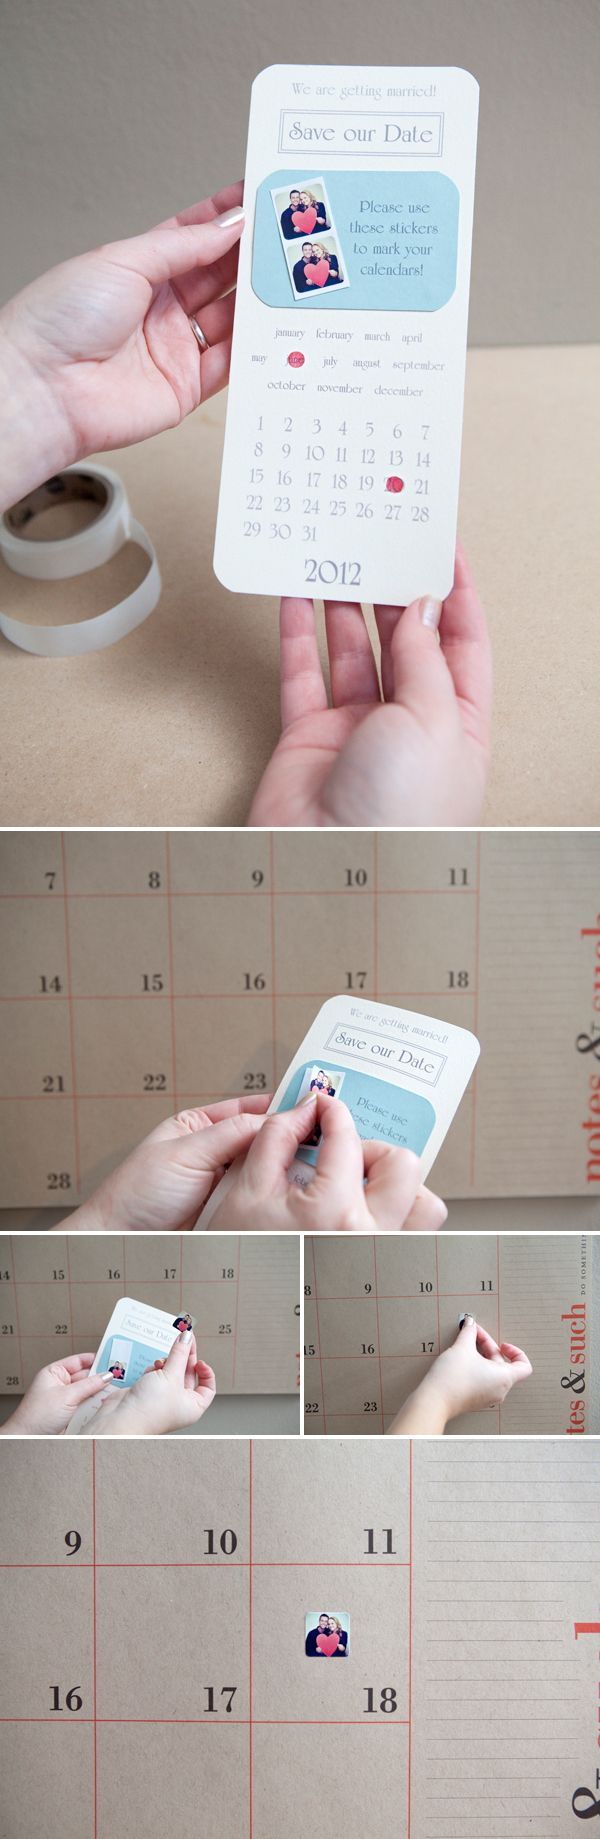 Wedding: Sticker reminder Save The Dates. Now THAT is a great idea! Why didn't I think of this??